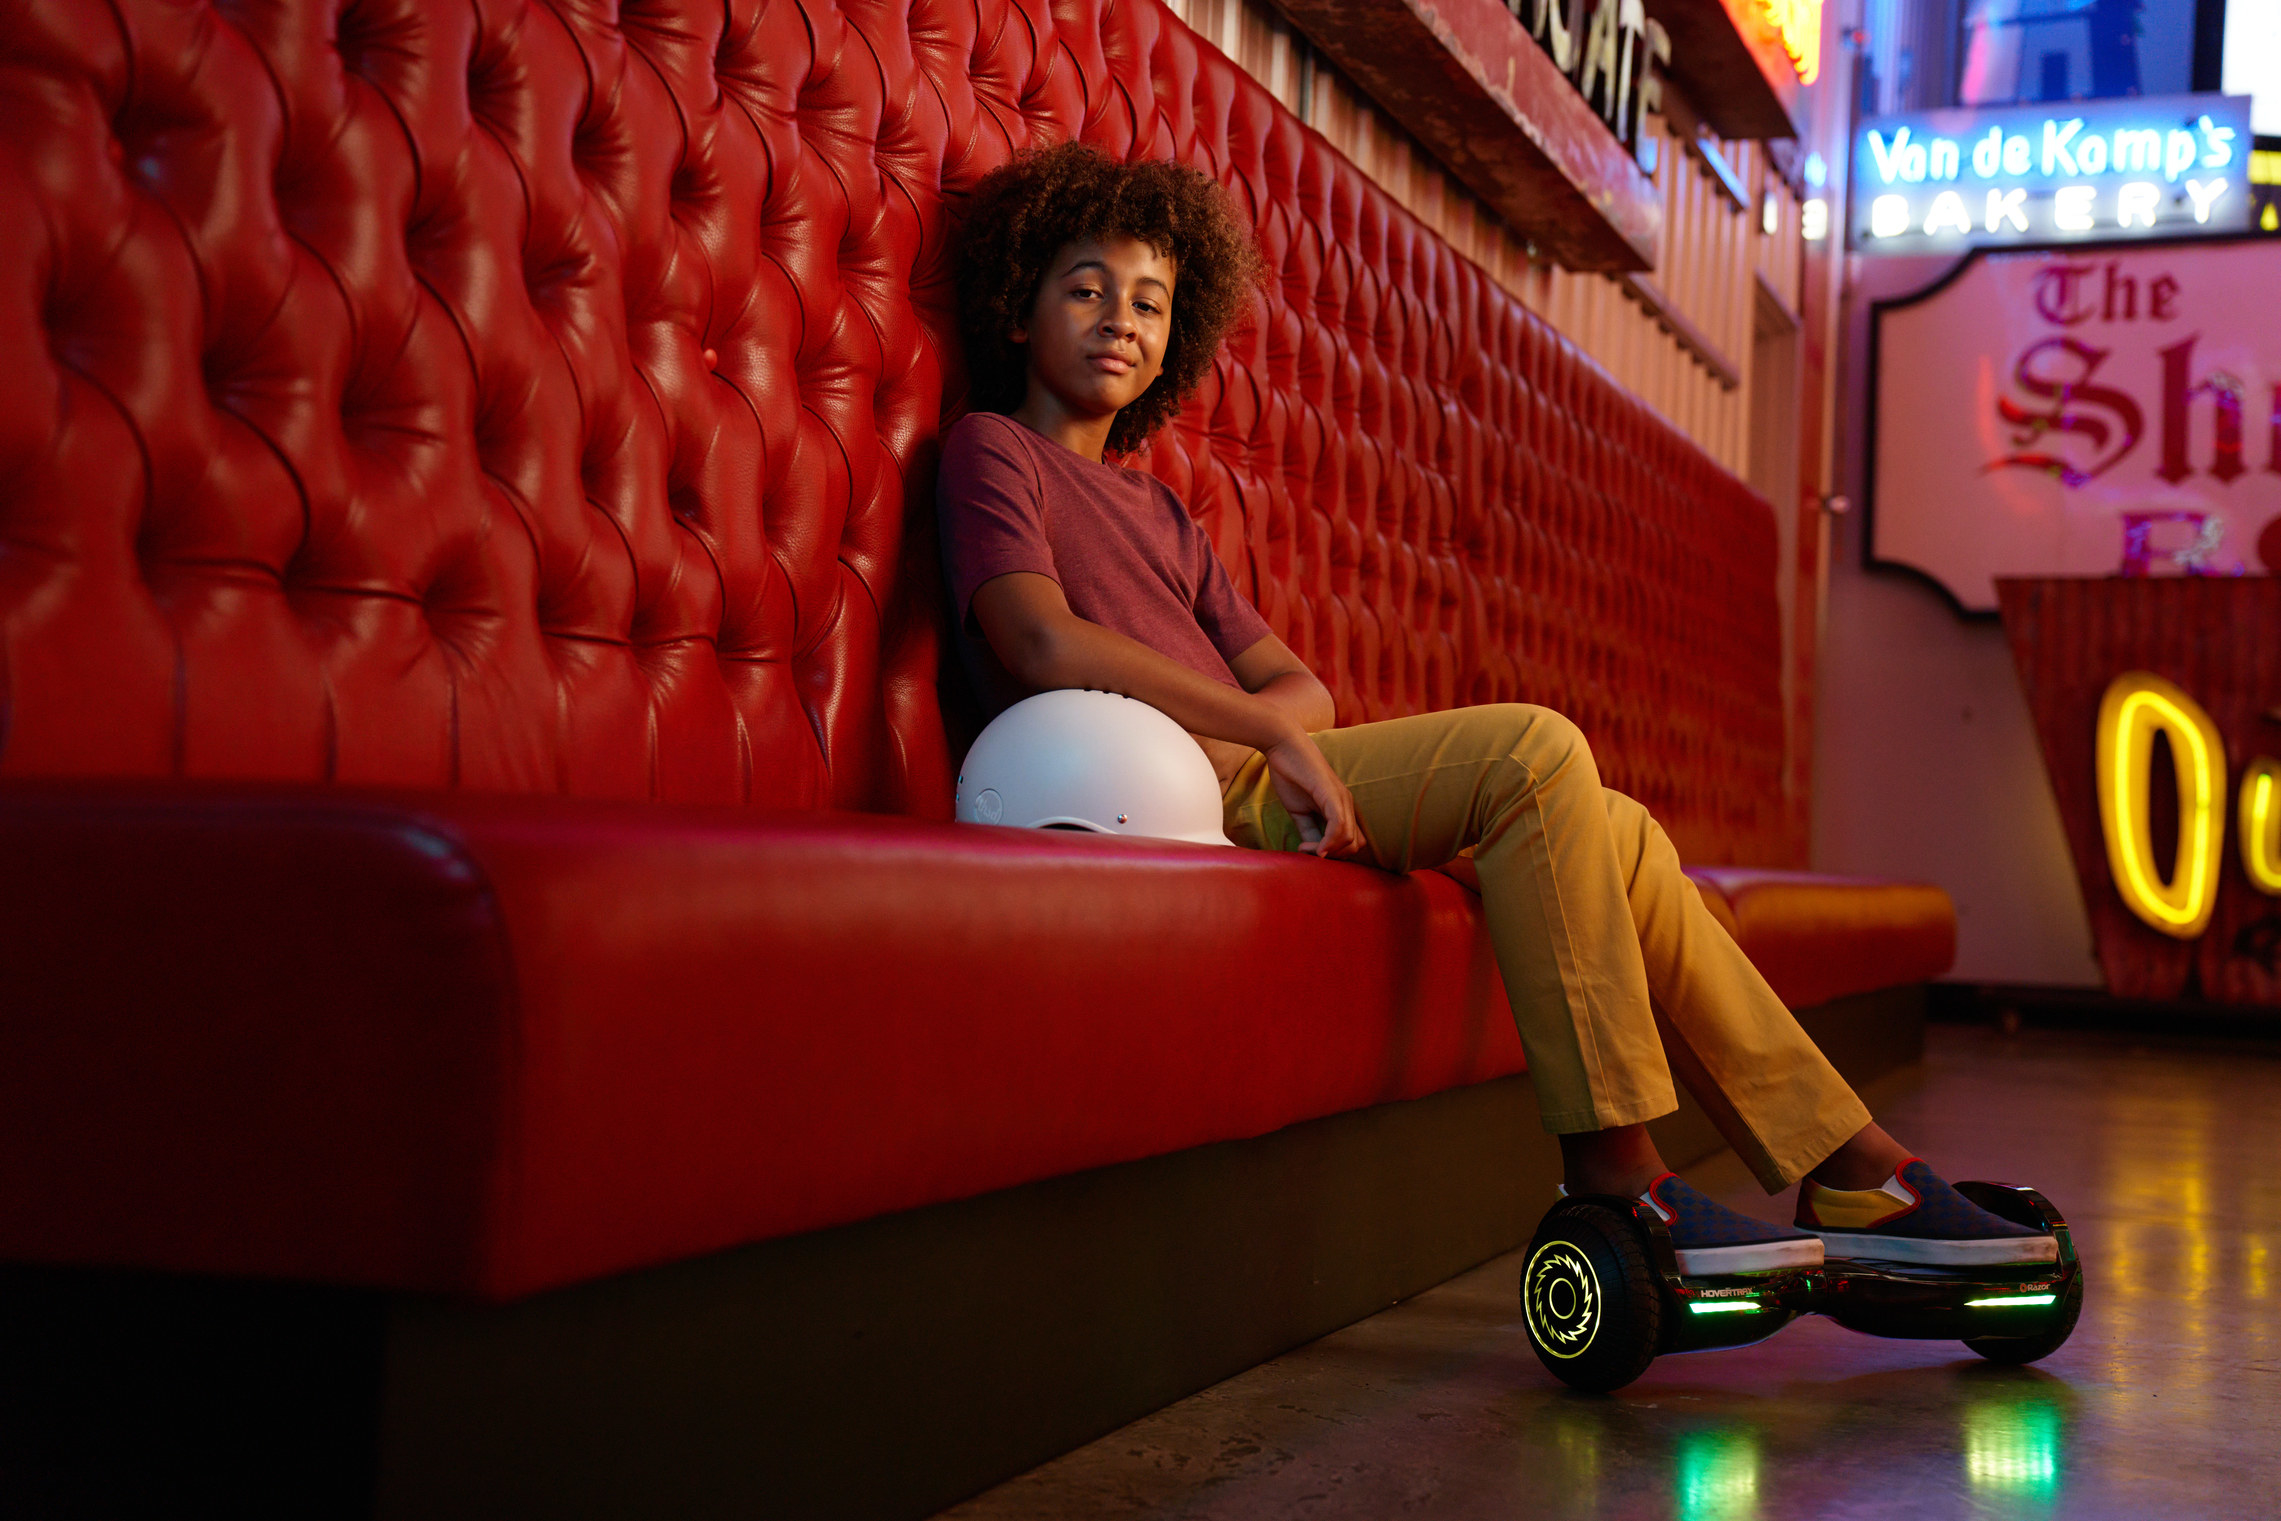 kid sitting on a couch with a lit up hoverboard on his feet